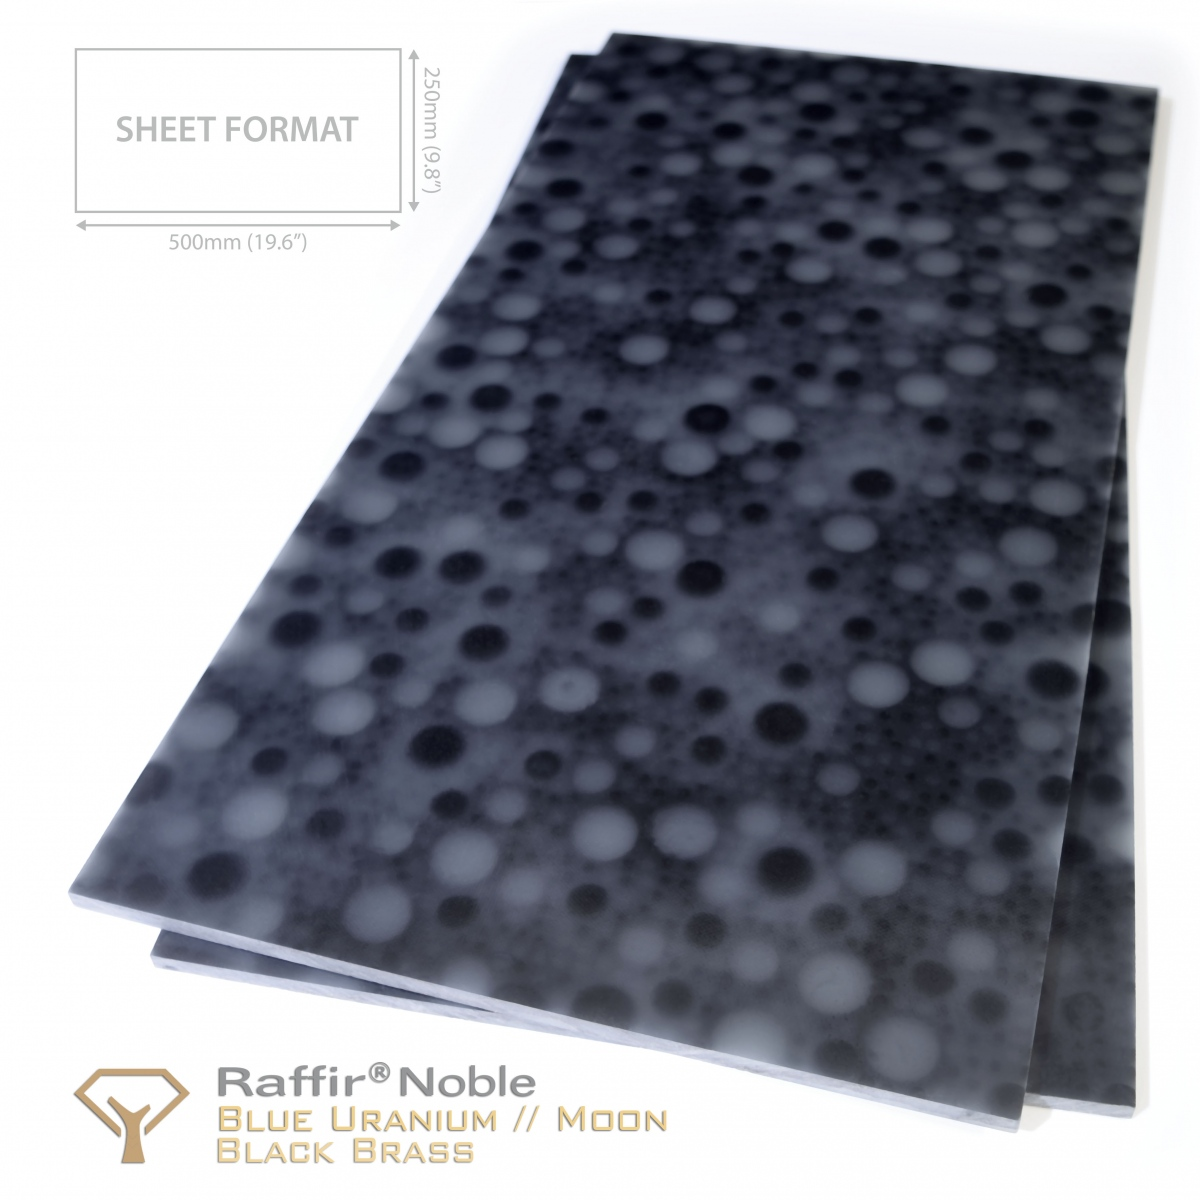 Raffir Noble - SFX - Blue Uranium - Moon